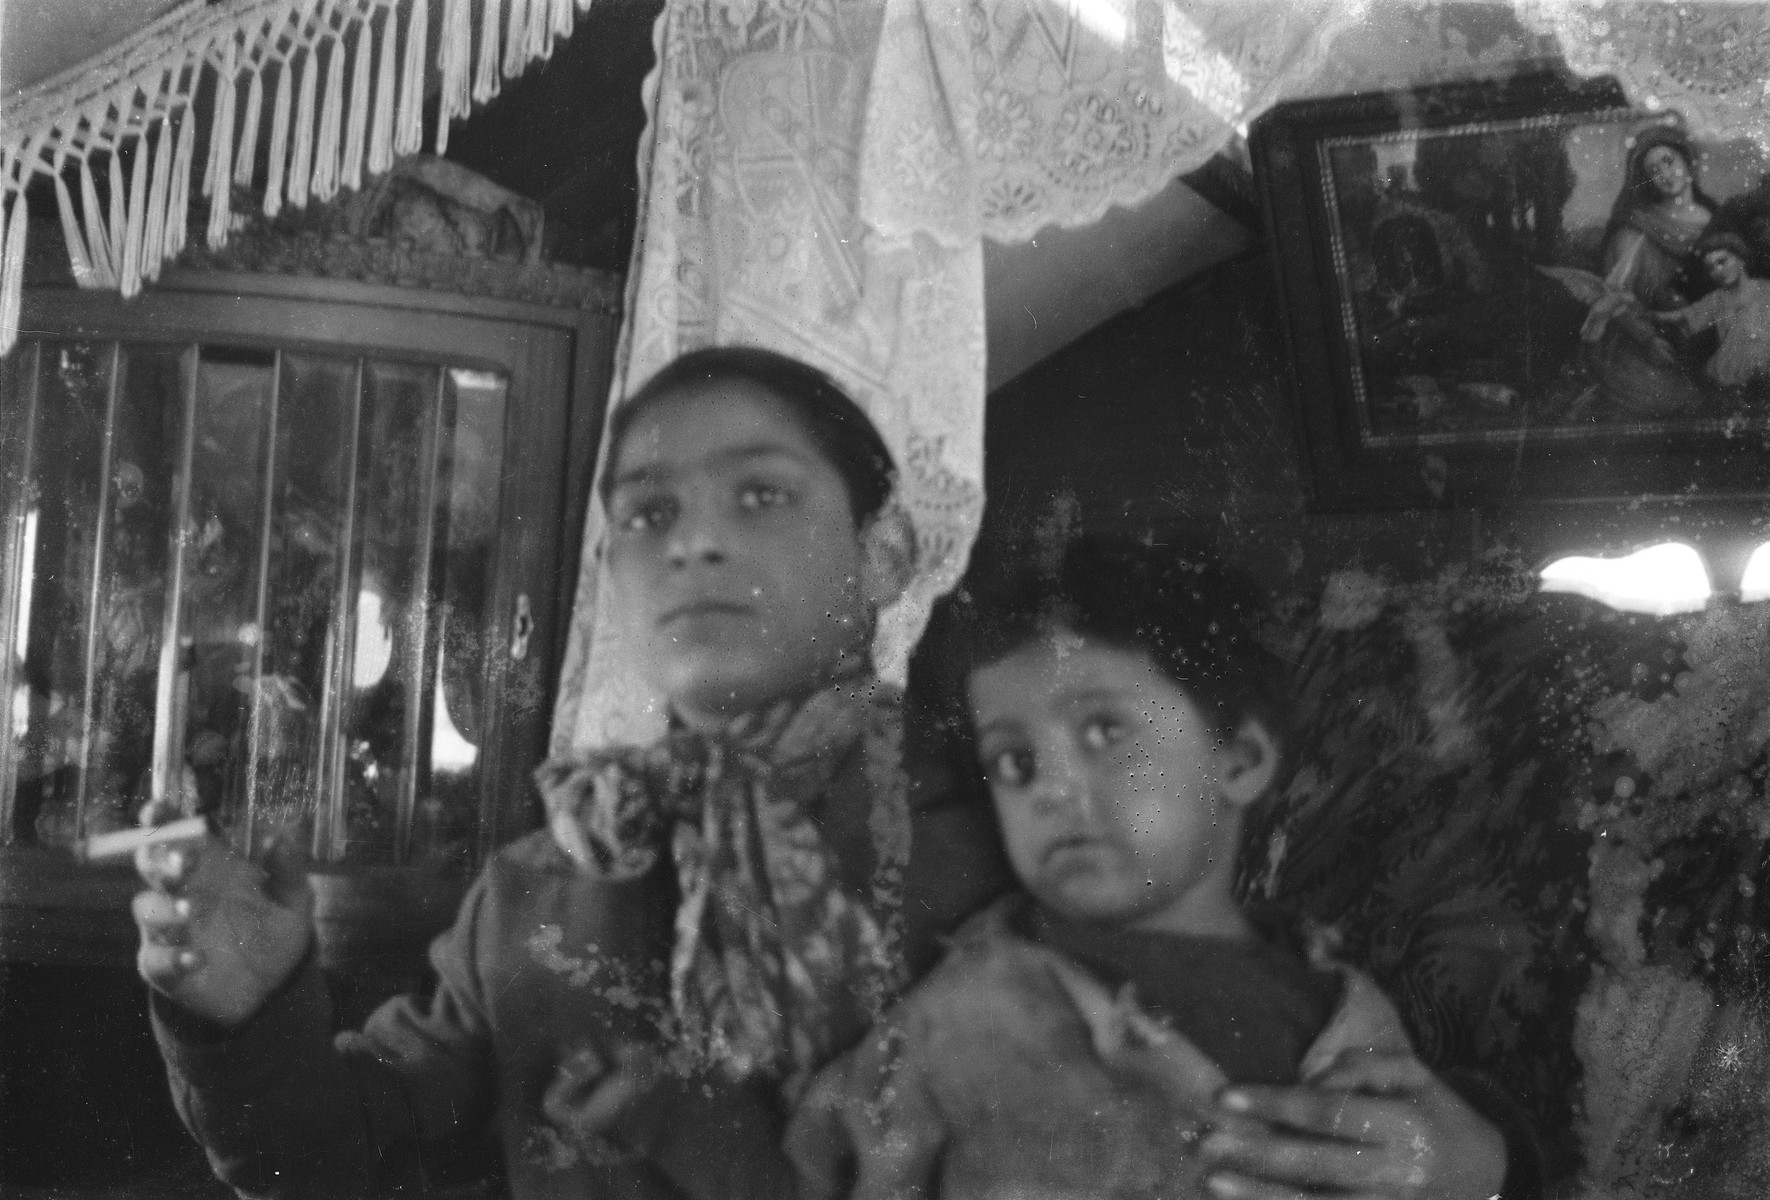 Portrait of a Roma youth holding a child, probably seated inside a caravan.